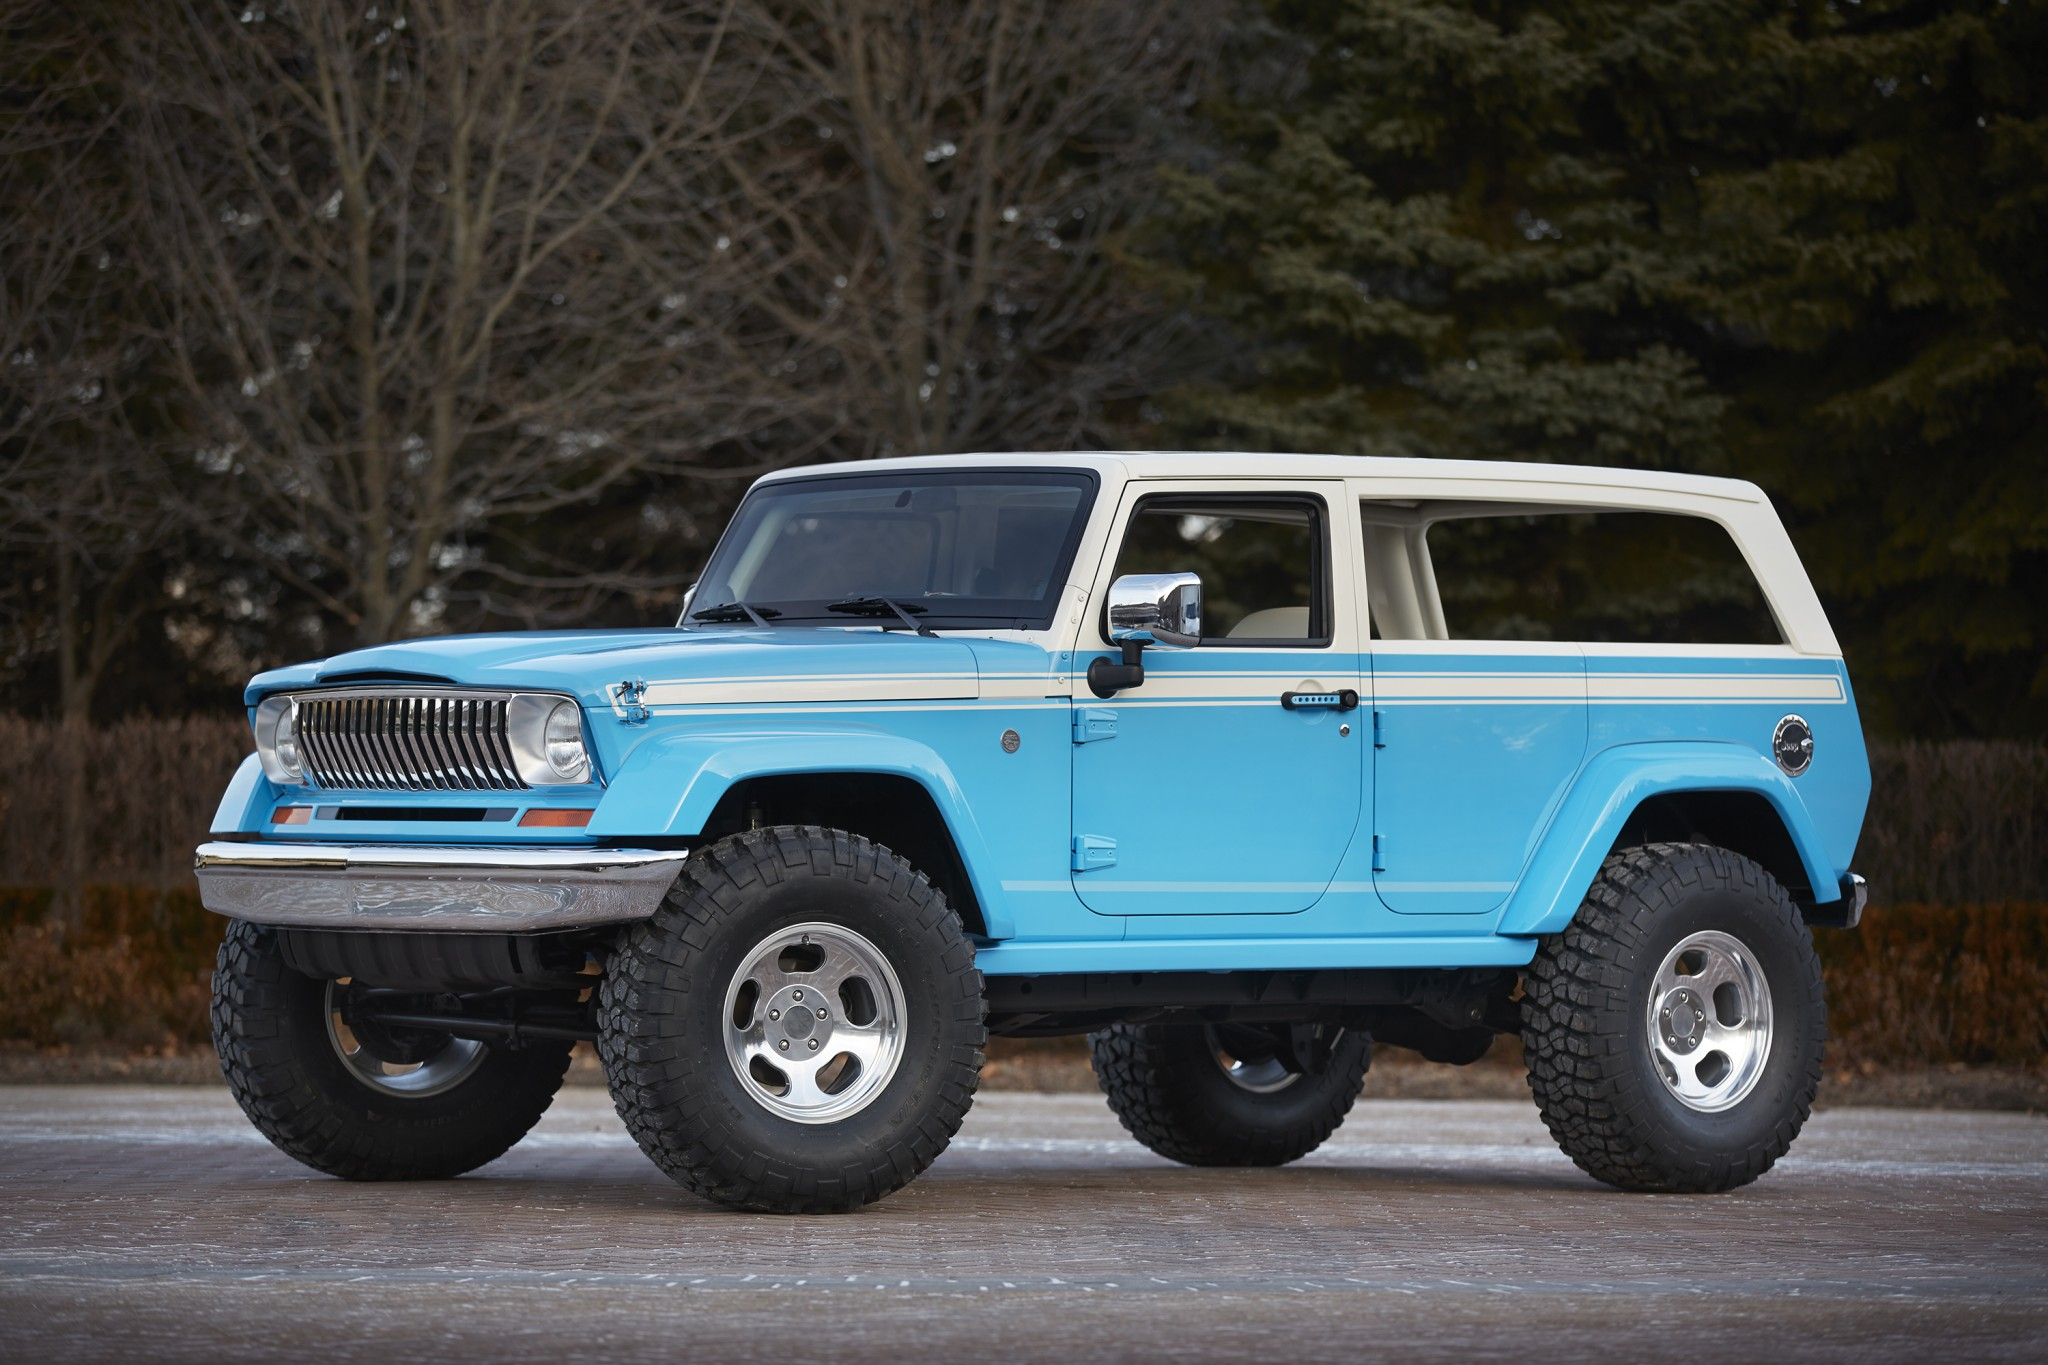 Jeep Chief Concept For Sale >> Jeep reveals seven concepts for the Easter Jeep Safari | Practical Motoring